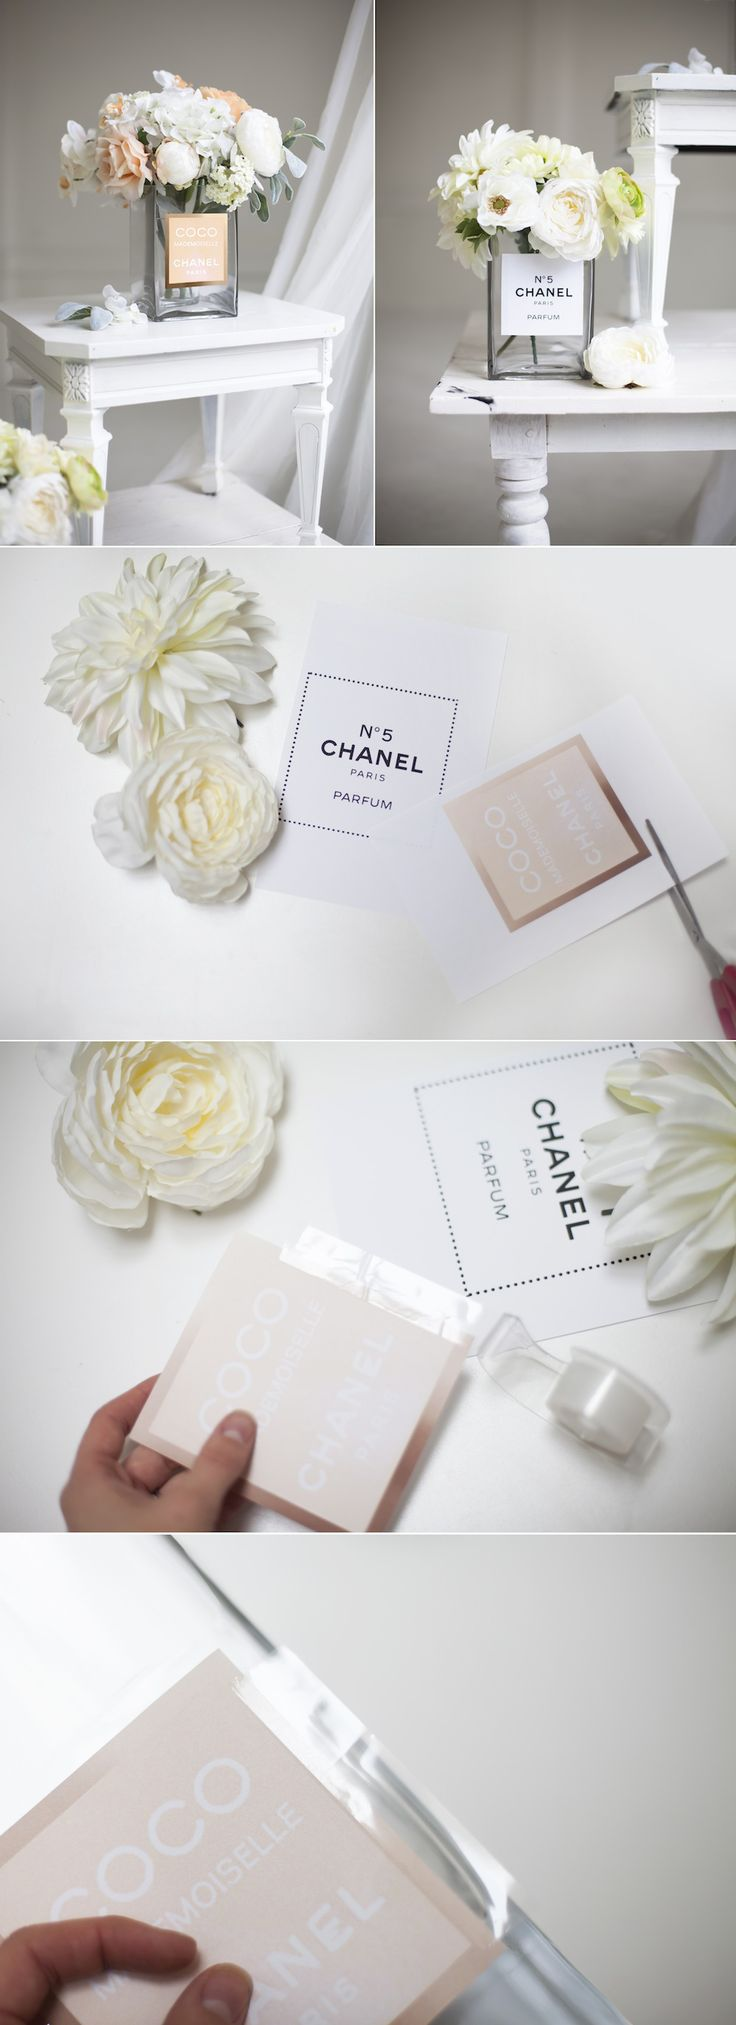 Perfume bottled Inspired Vase......place on your buffet with some Chanel cupcakes! |Pinterest: @lauranoet